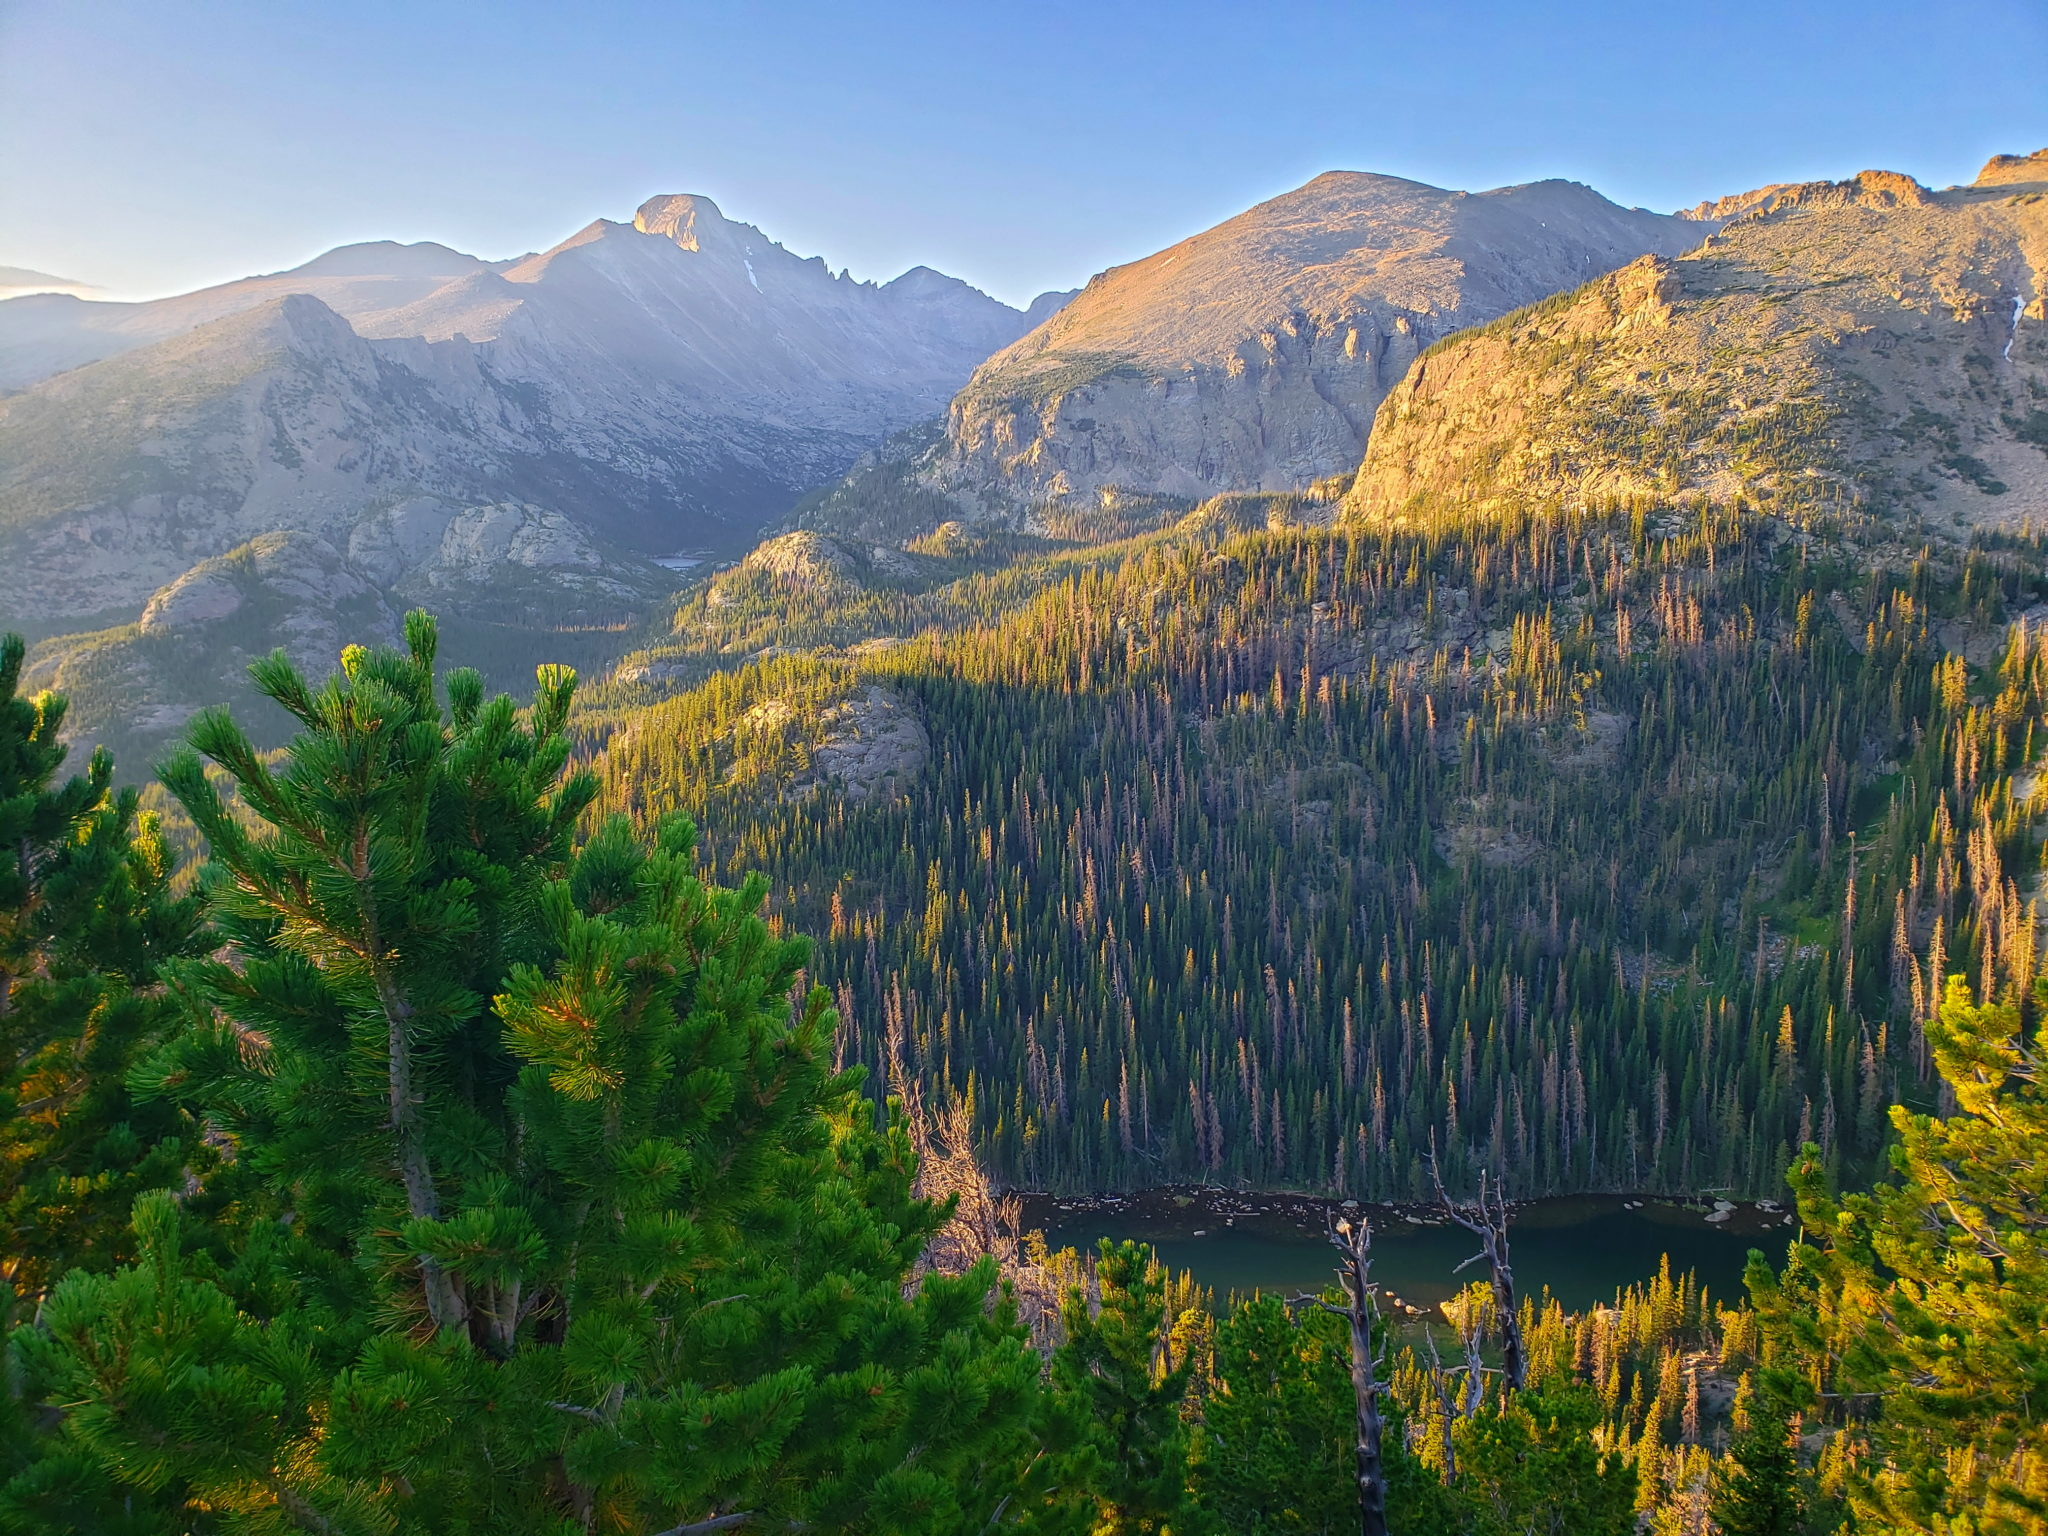 Dream Lake with Longs Peak (left of center) and Thatchtop Mountain.